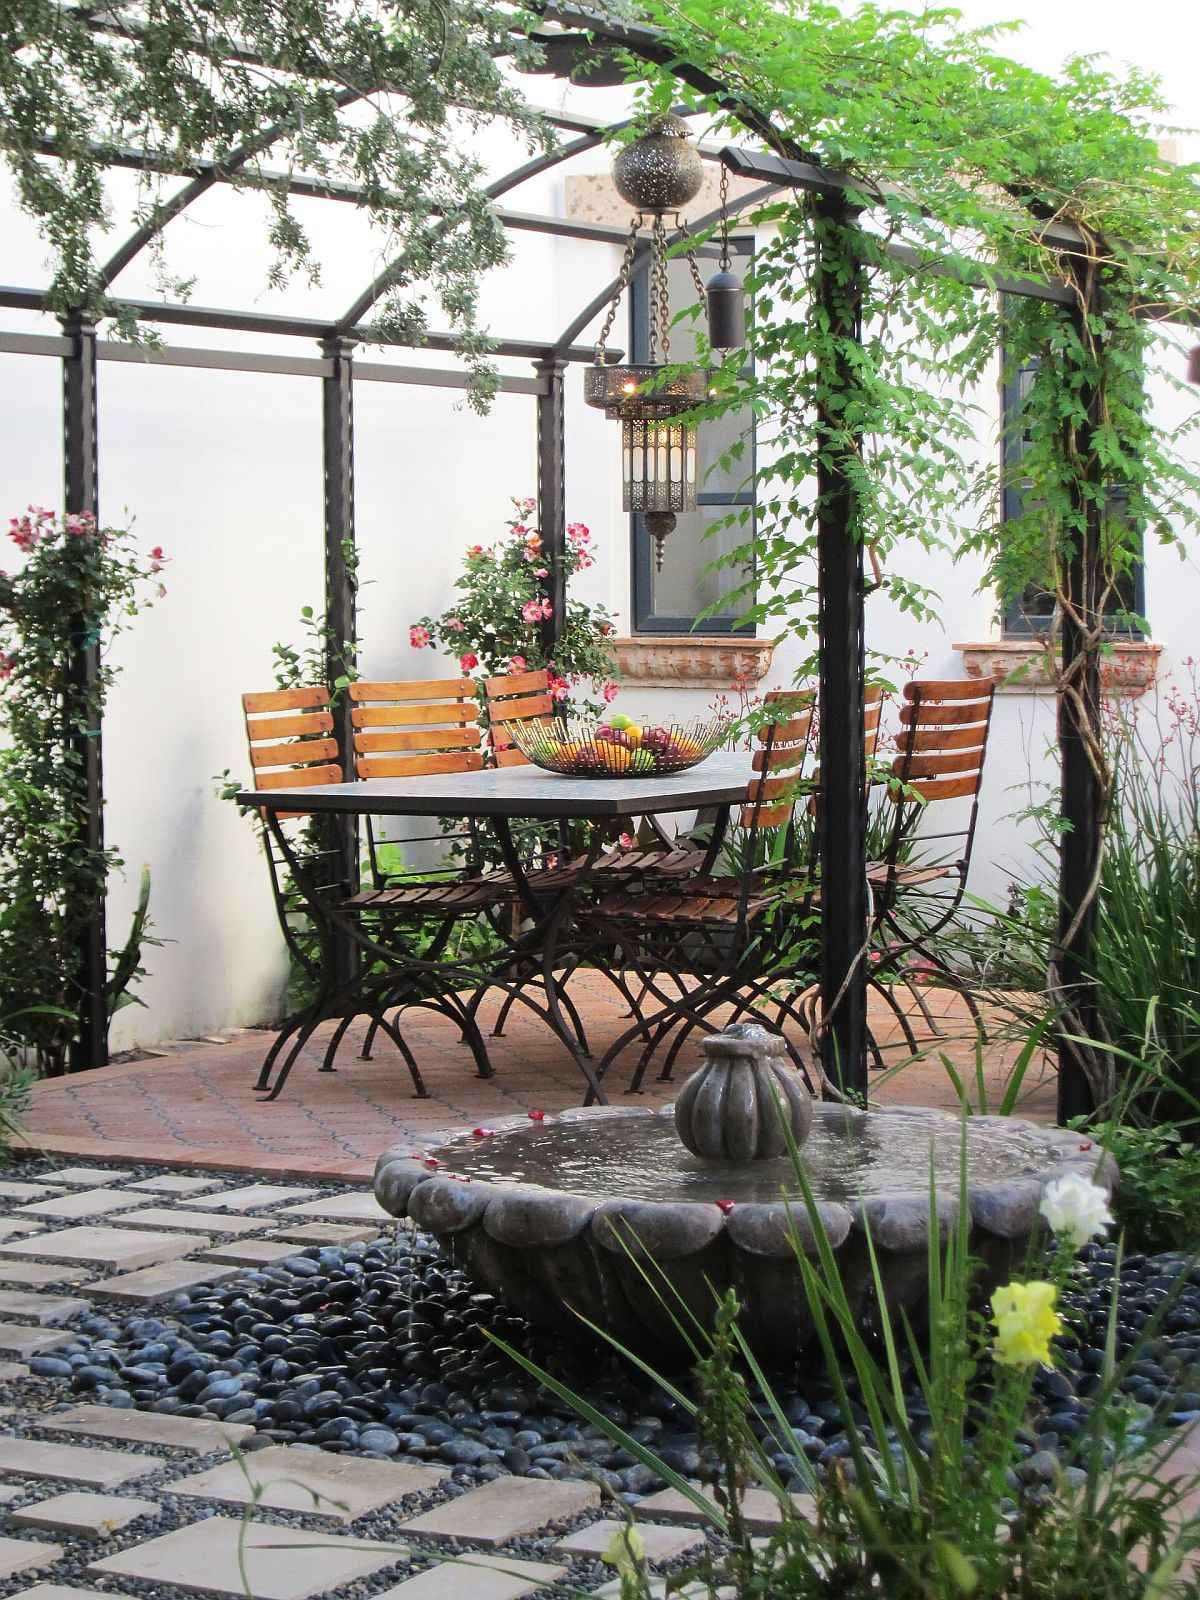 Slim pergola structure coupled with with creepers to create shade in the garden